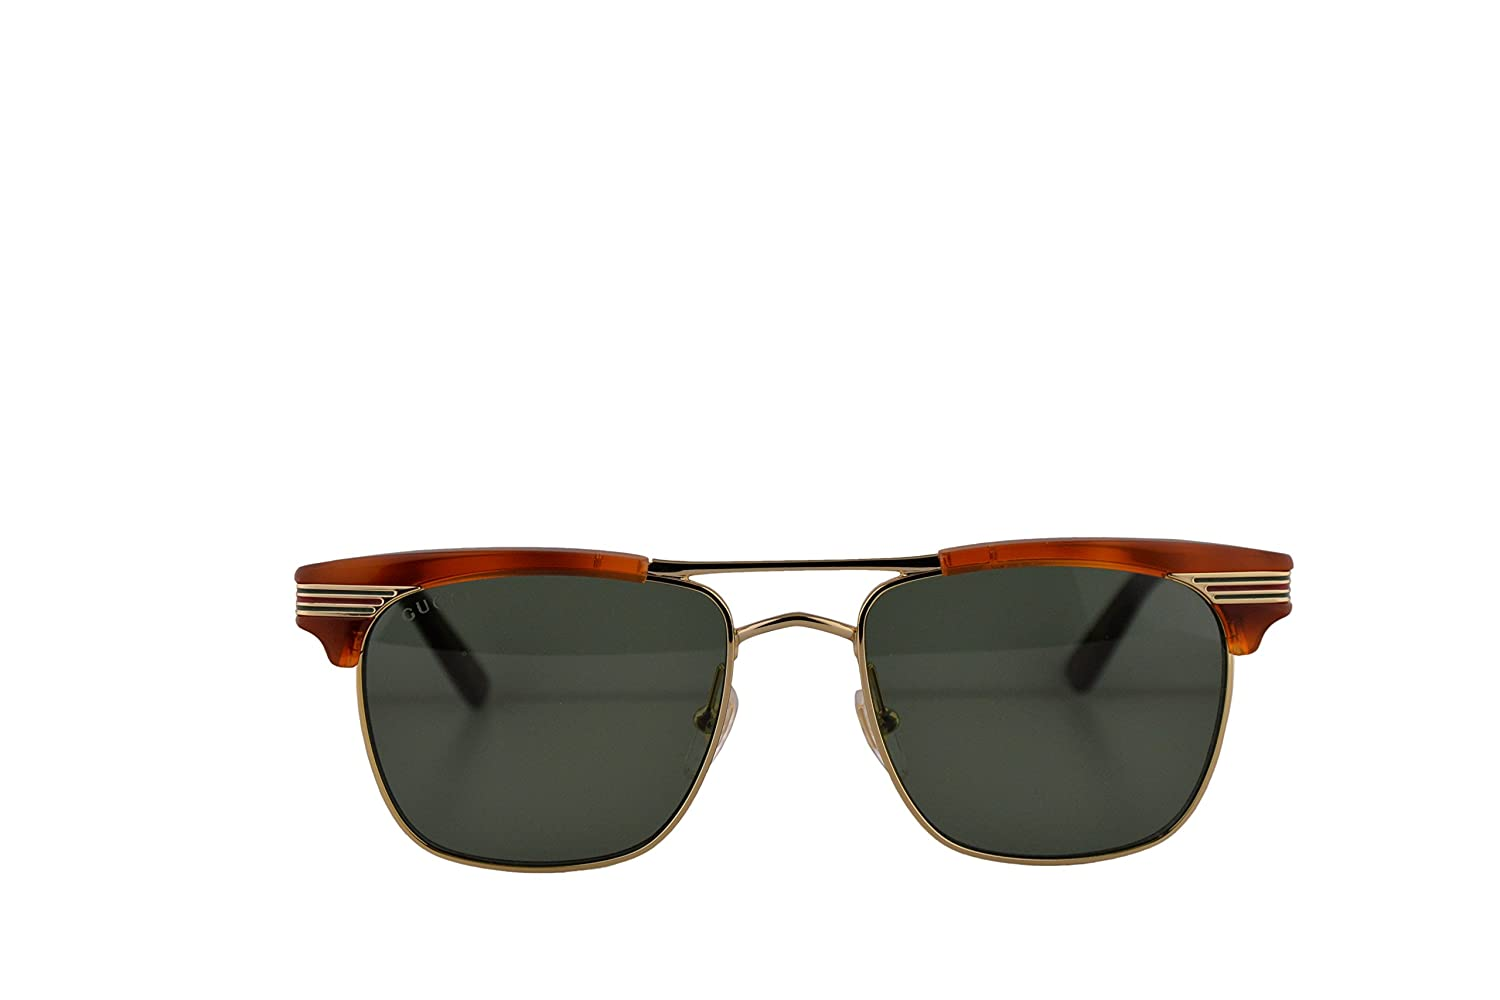 c1274d7323 Gucci GG0287S Sunglasses Havana Gold w Green Lens 52mm 004 GG0287 S GG  0287 S GG 0287S  Amazon.ca  Clothing   Accessories